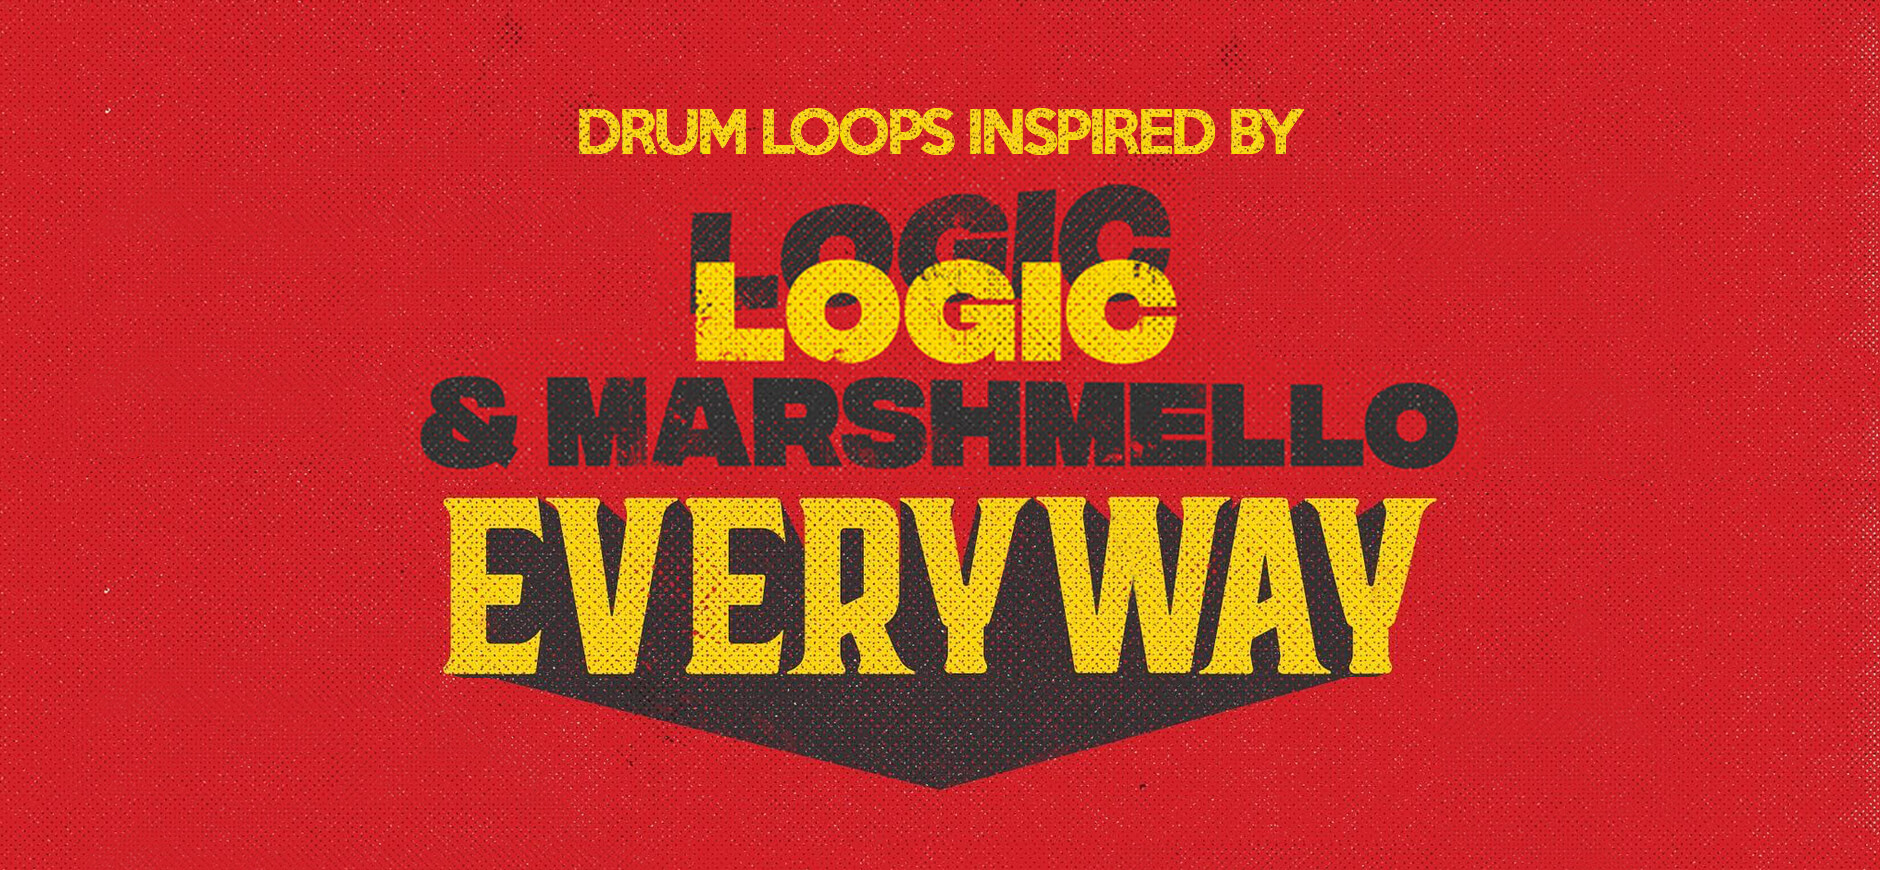 Everyday Drum Loops Kit Inspired by Logic & Marshmello